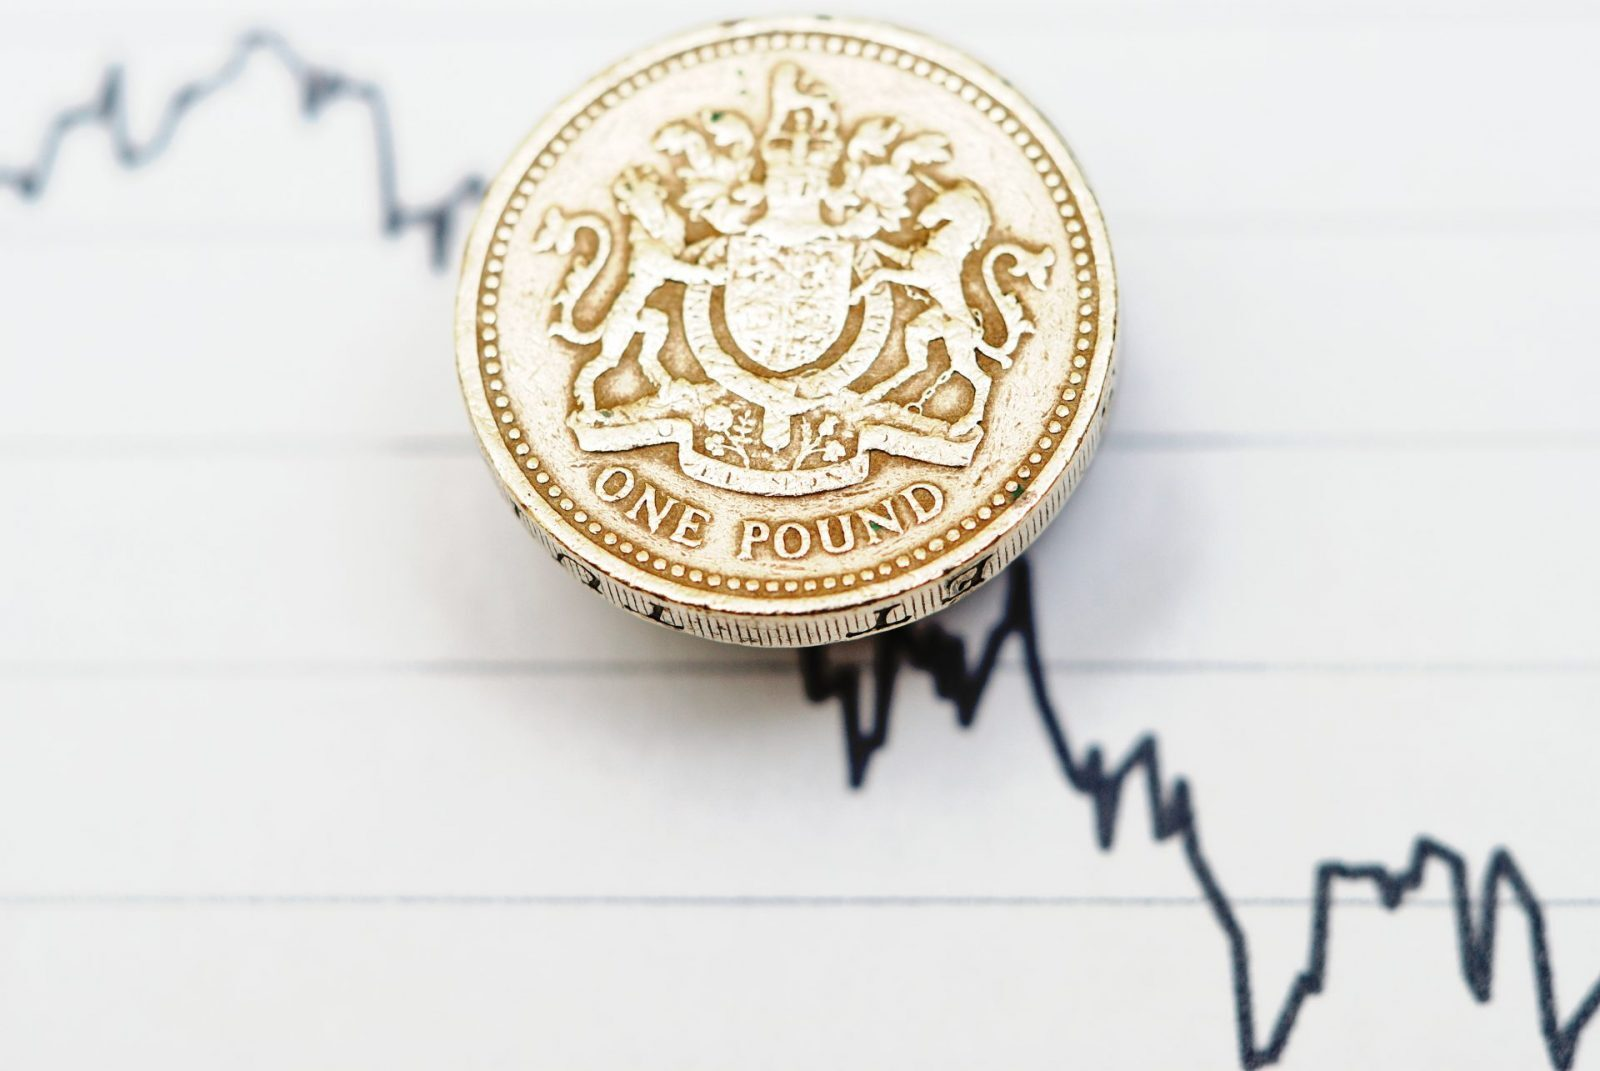 sterling weakens sharply